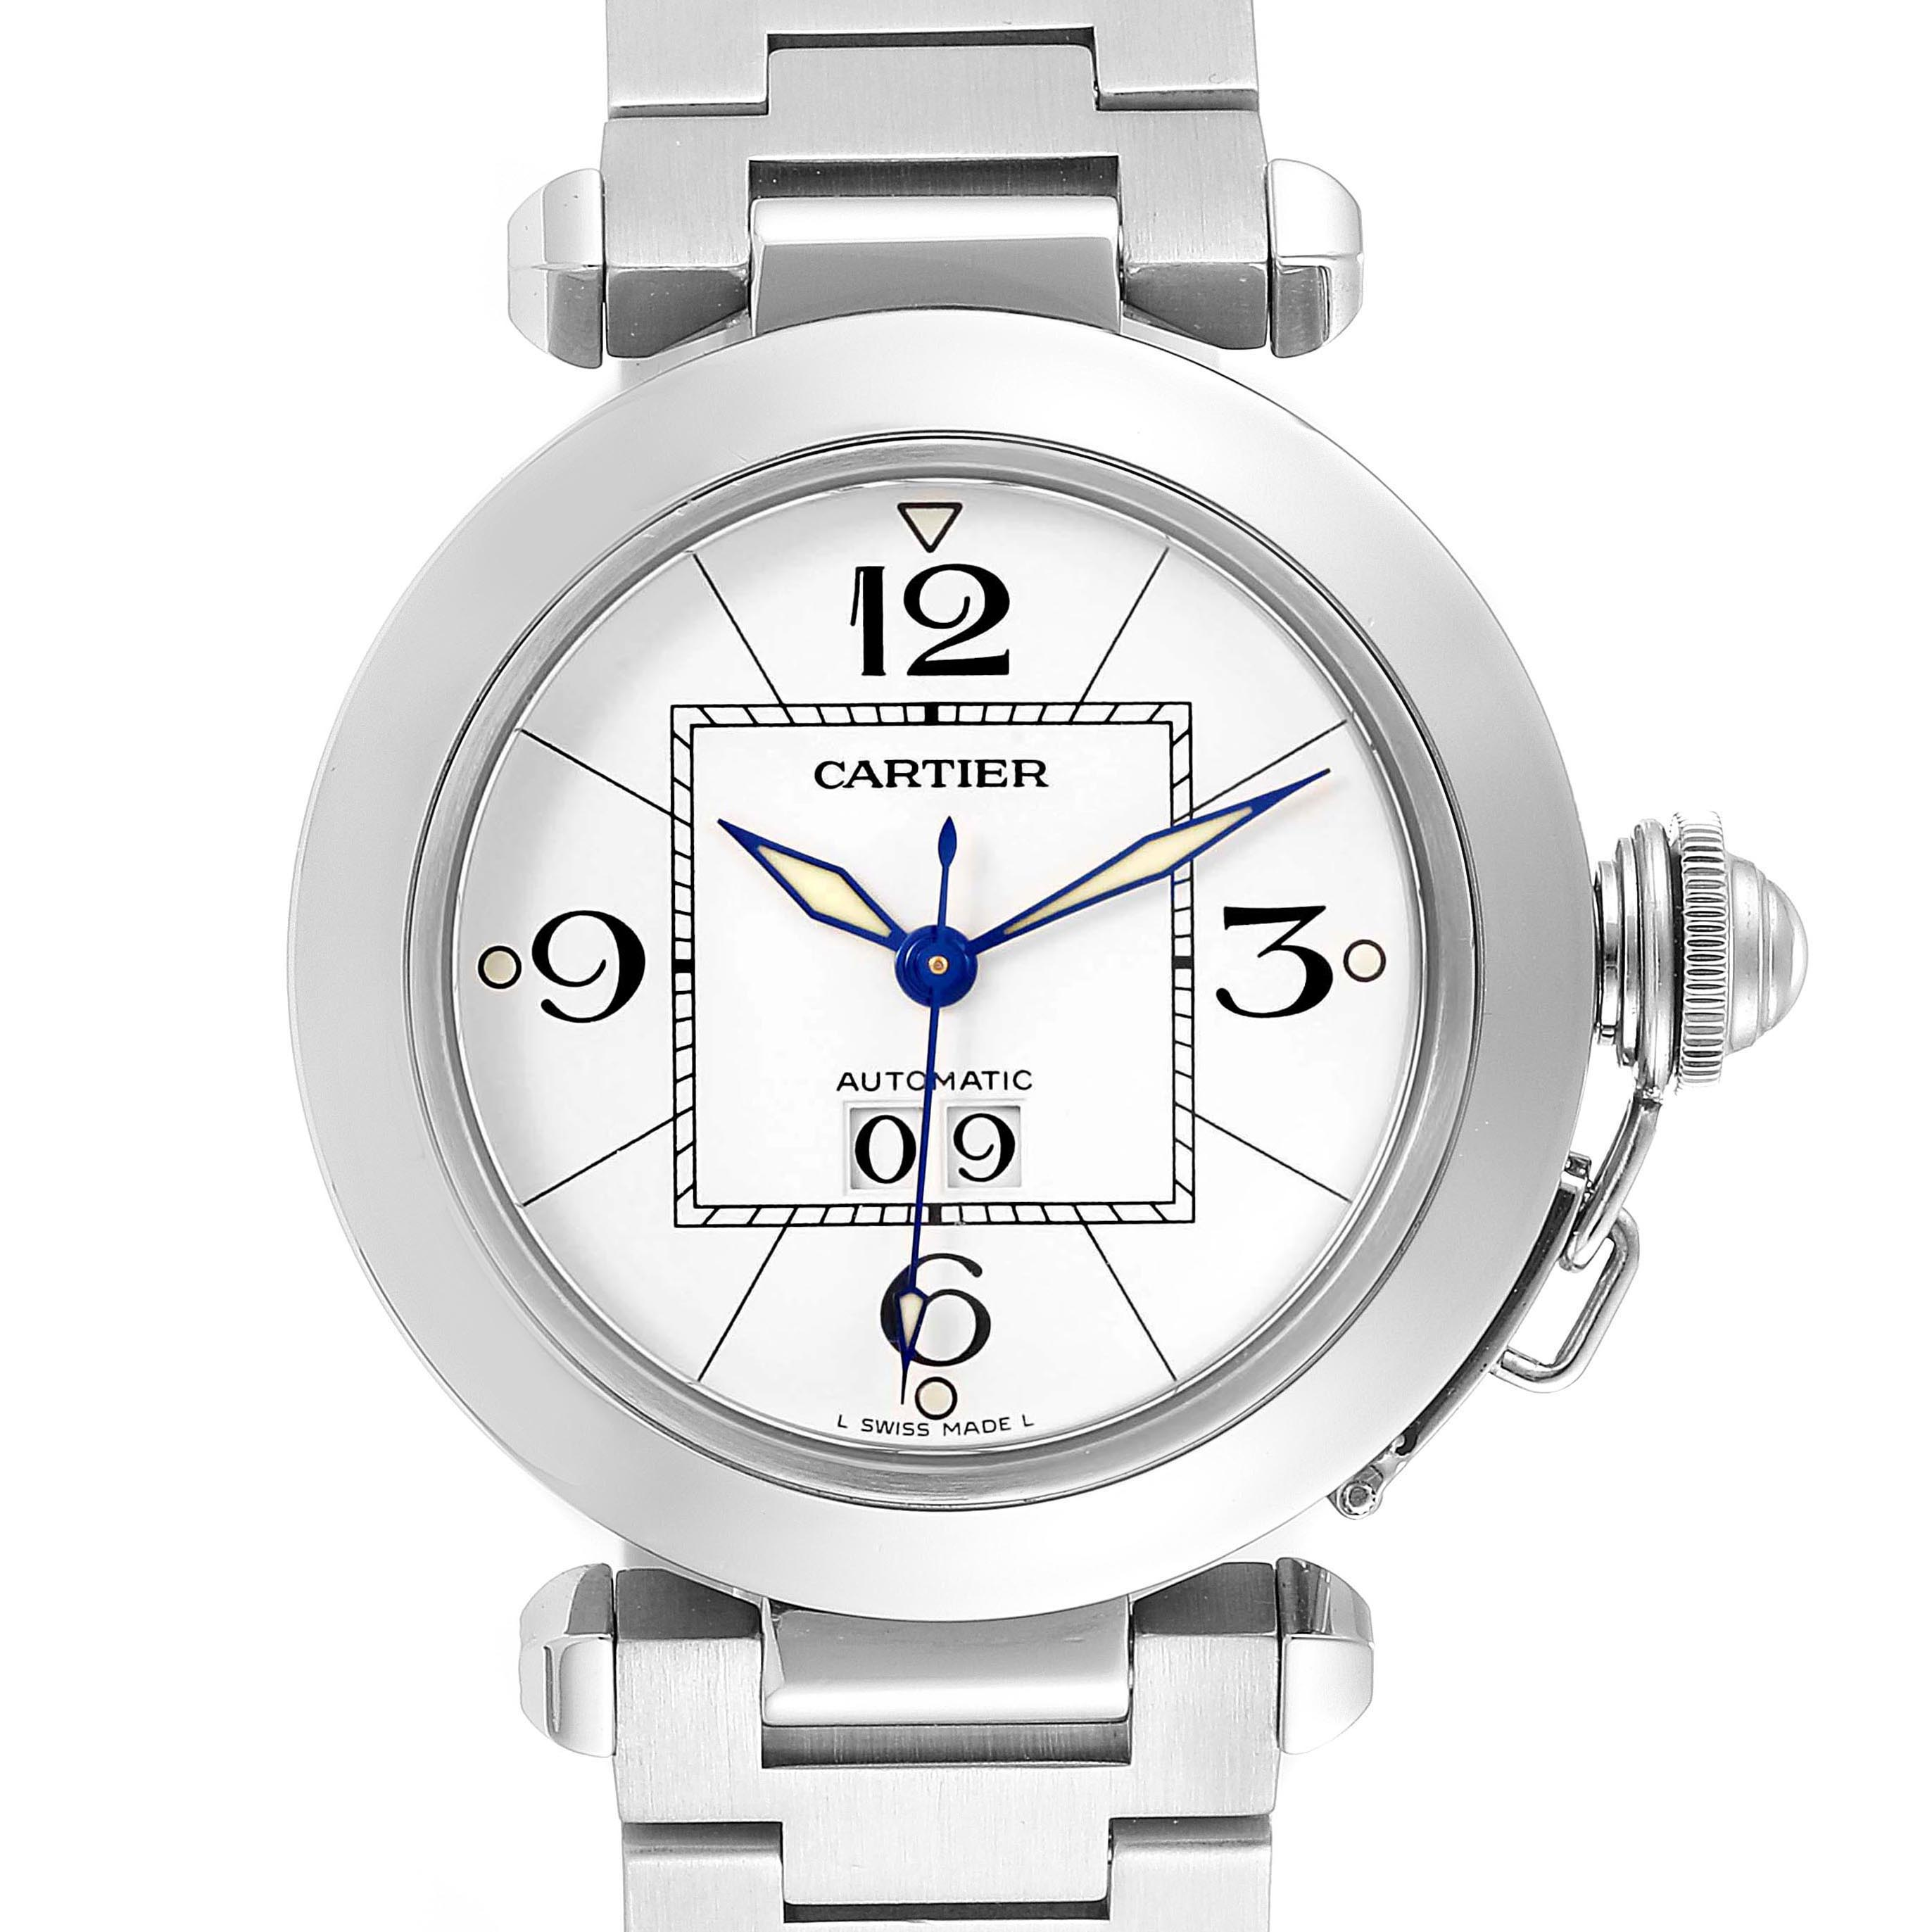 Cartier Pasha C Midsize White Dial Automatic Steel Watch W31044M7 SwissWatchExpo